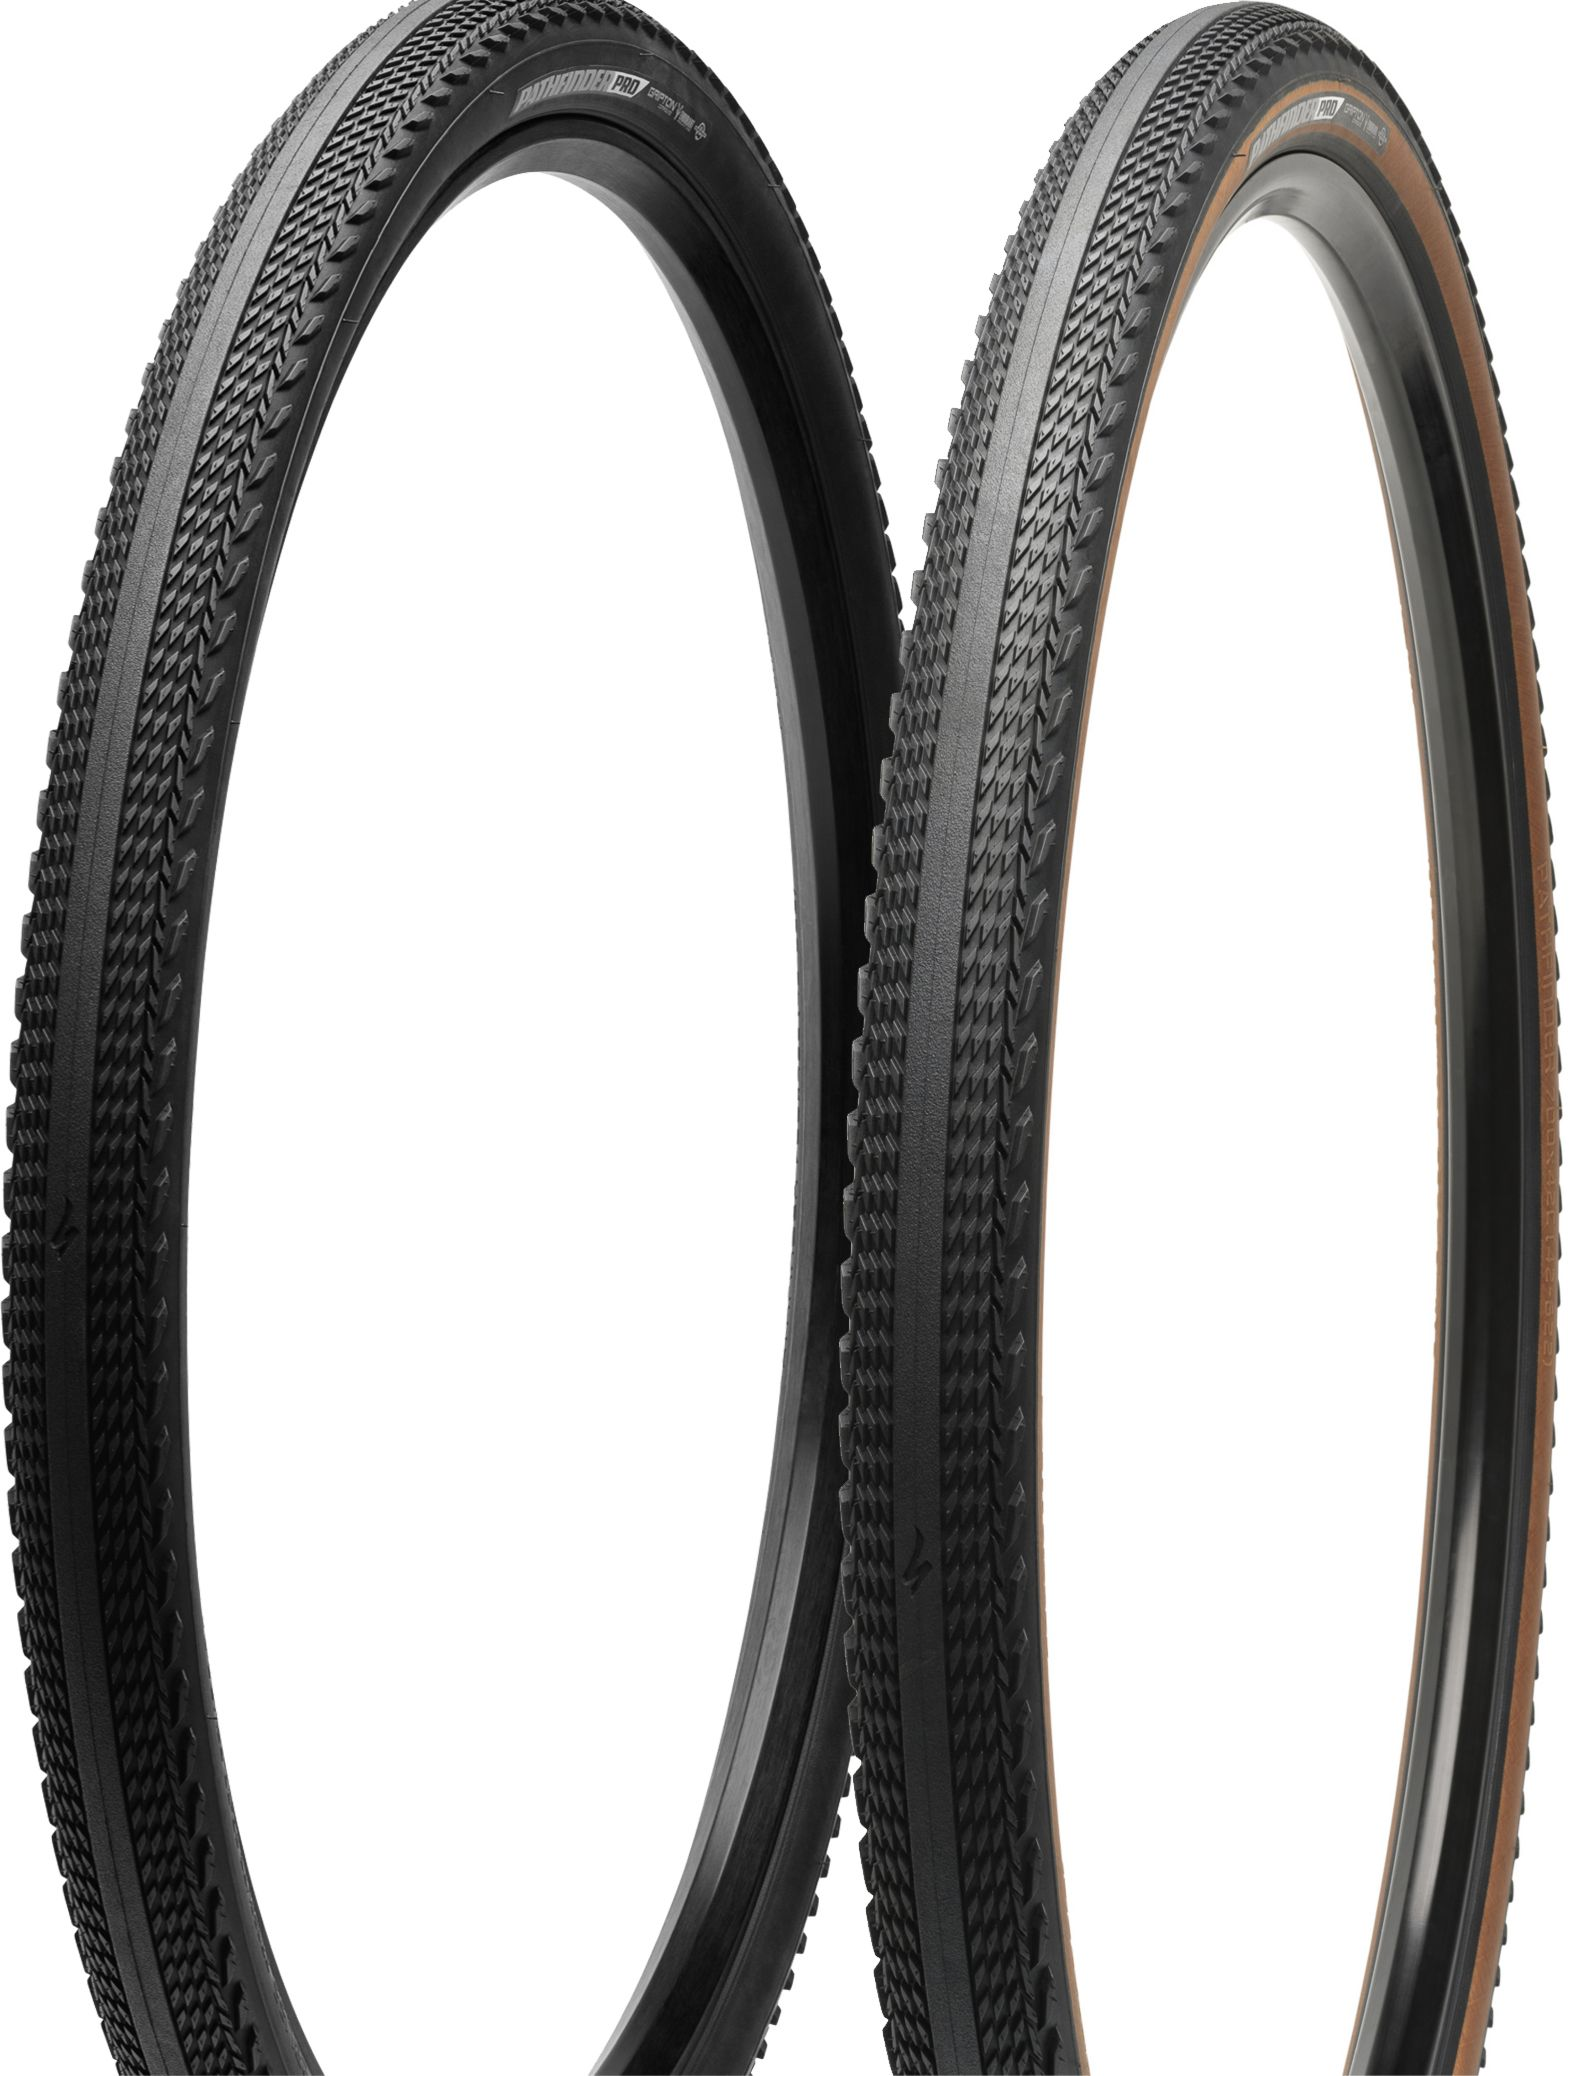 Specialized Pathfinder Pro 2bliss Ready 700c Gravel Tyre | Tyres